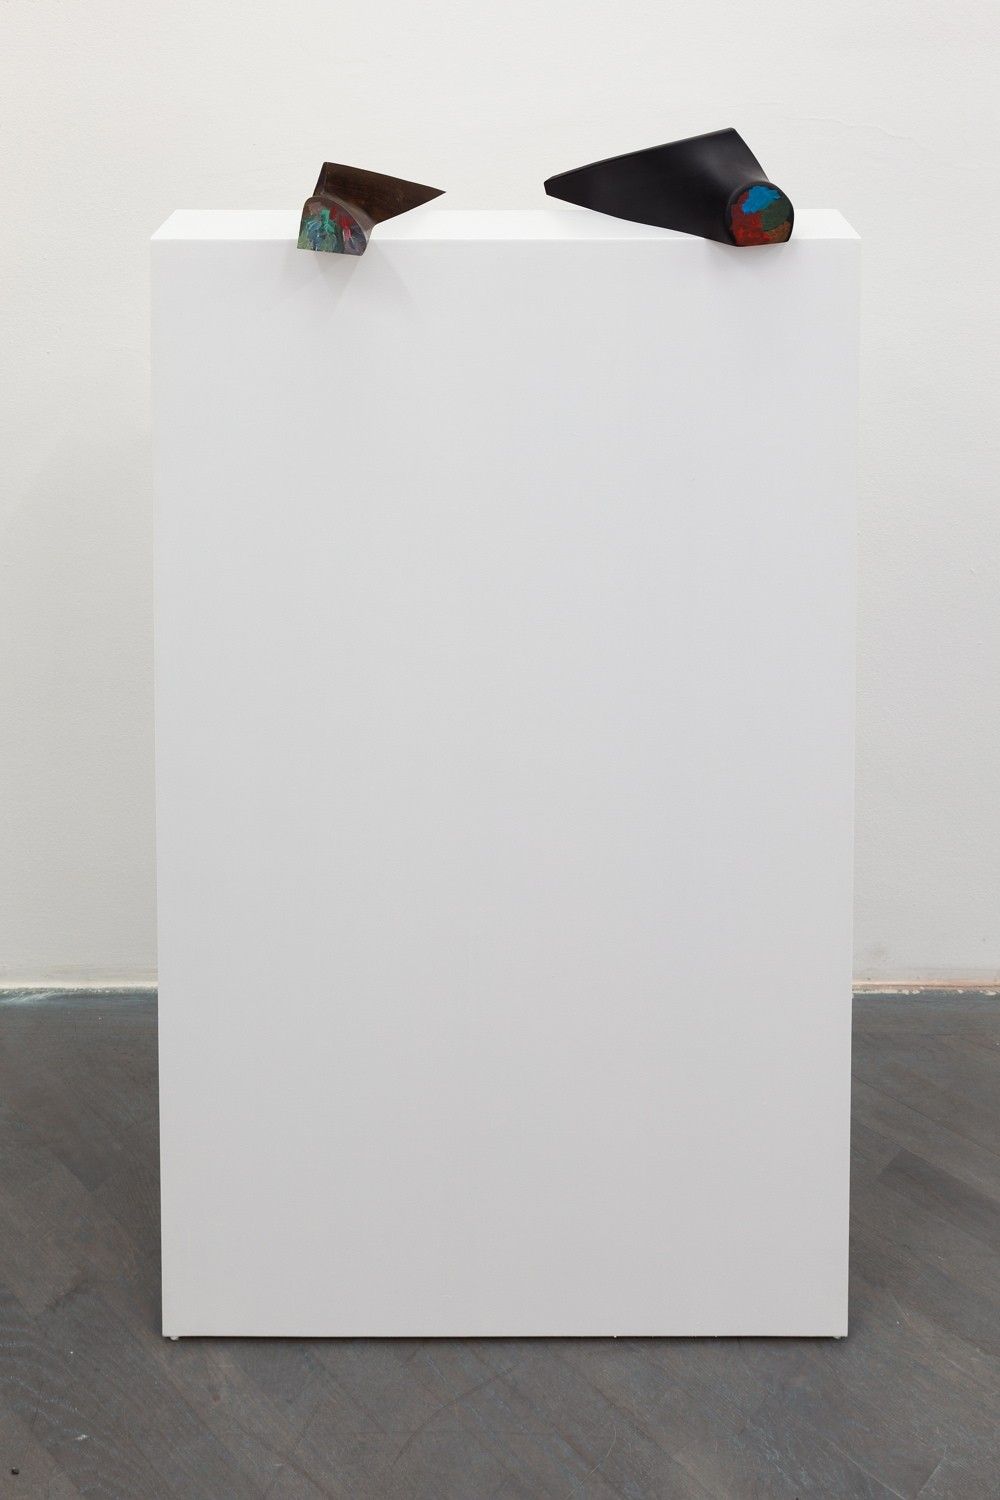 Exhibition View, Galerie Emanuel Layr, curated by_Florence Derieux, 2012, Photo: Galerie Emanuel Layr